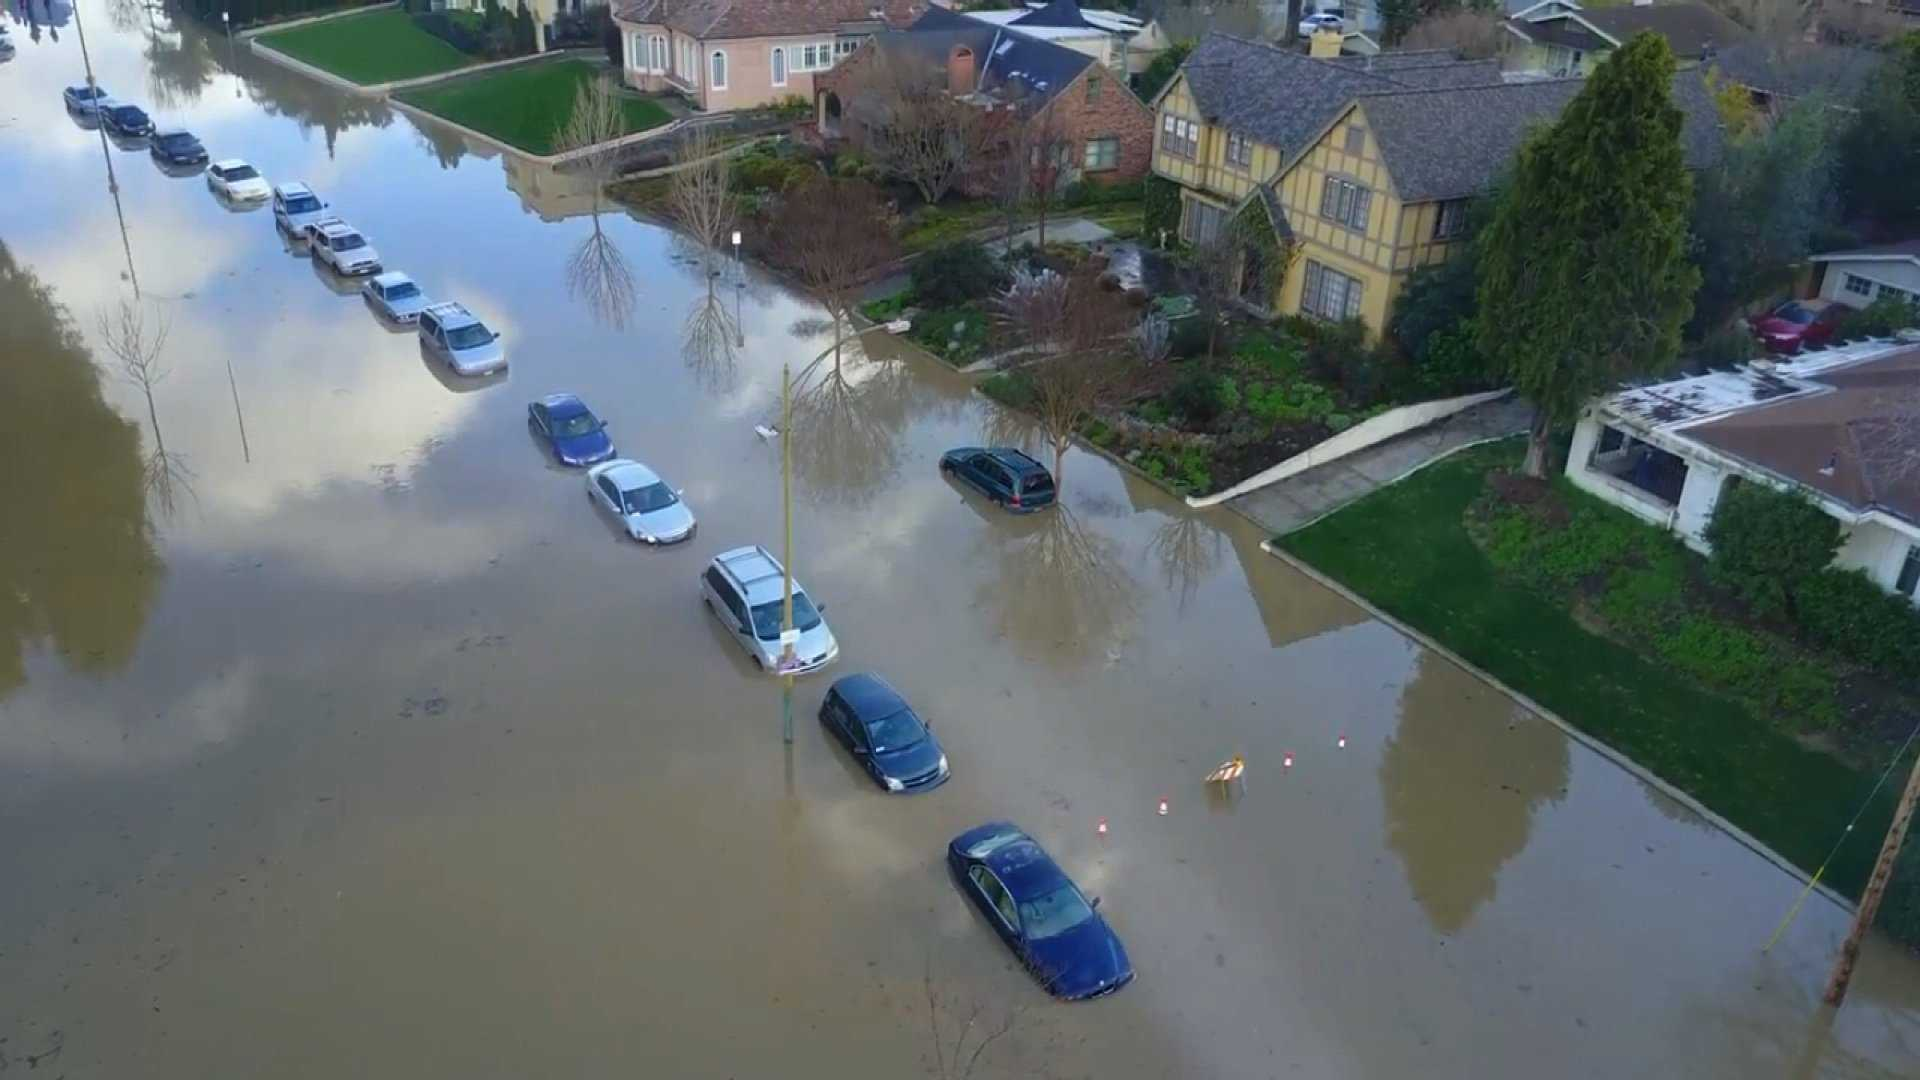 Flood waters cover streets, cars and some homes in San Jose, California, in this photo taken on Feb. 22, 2017